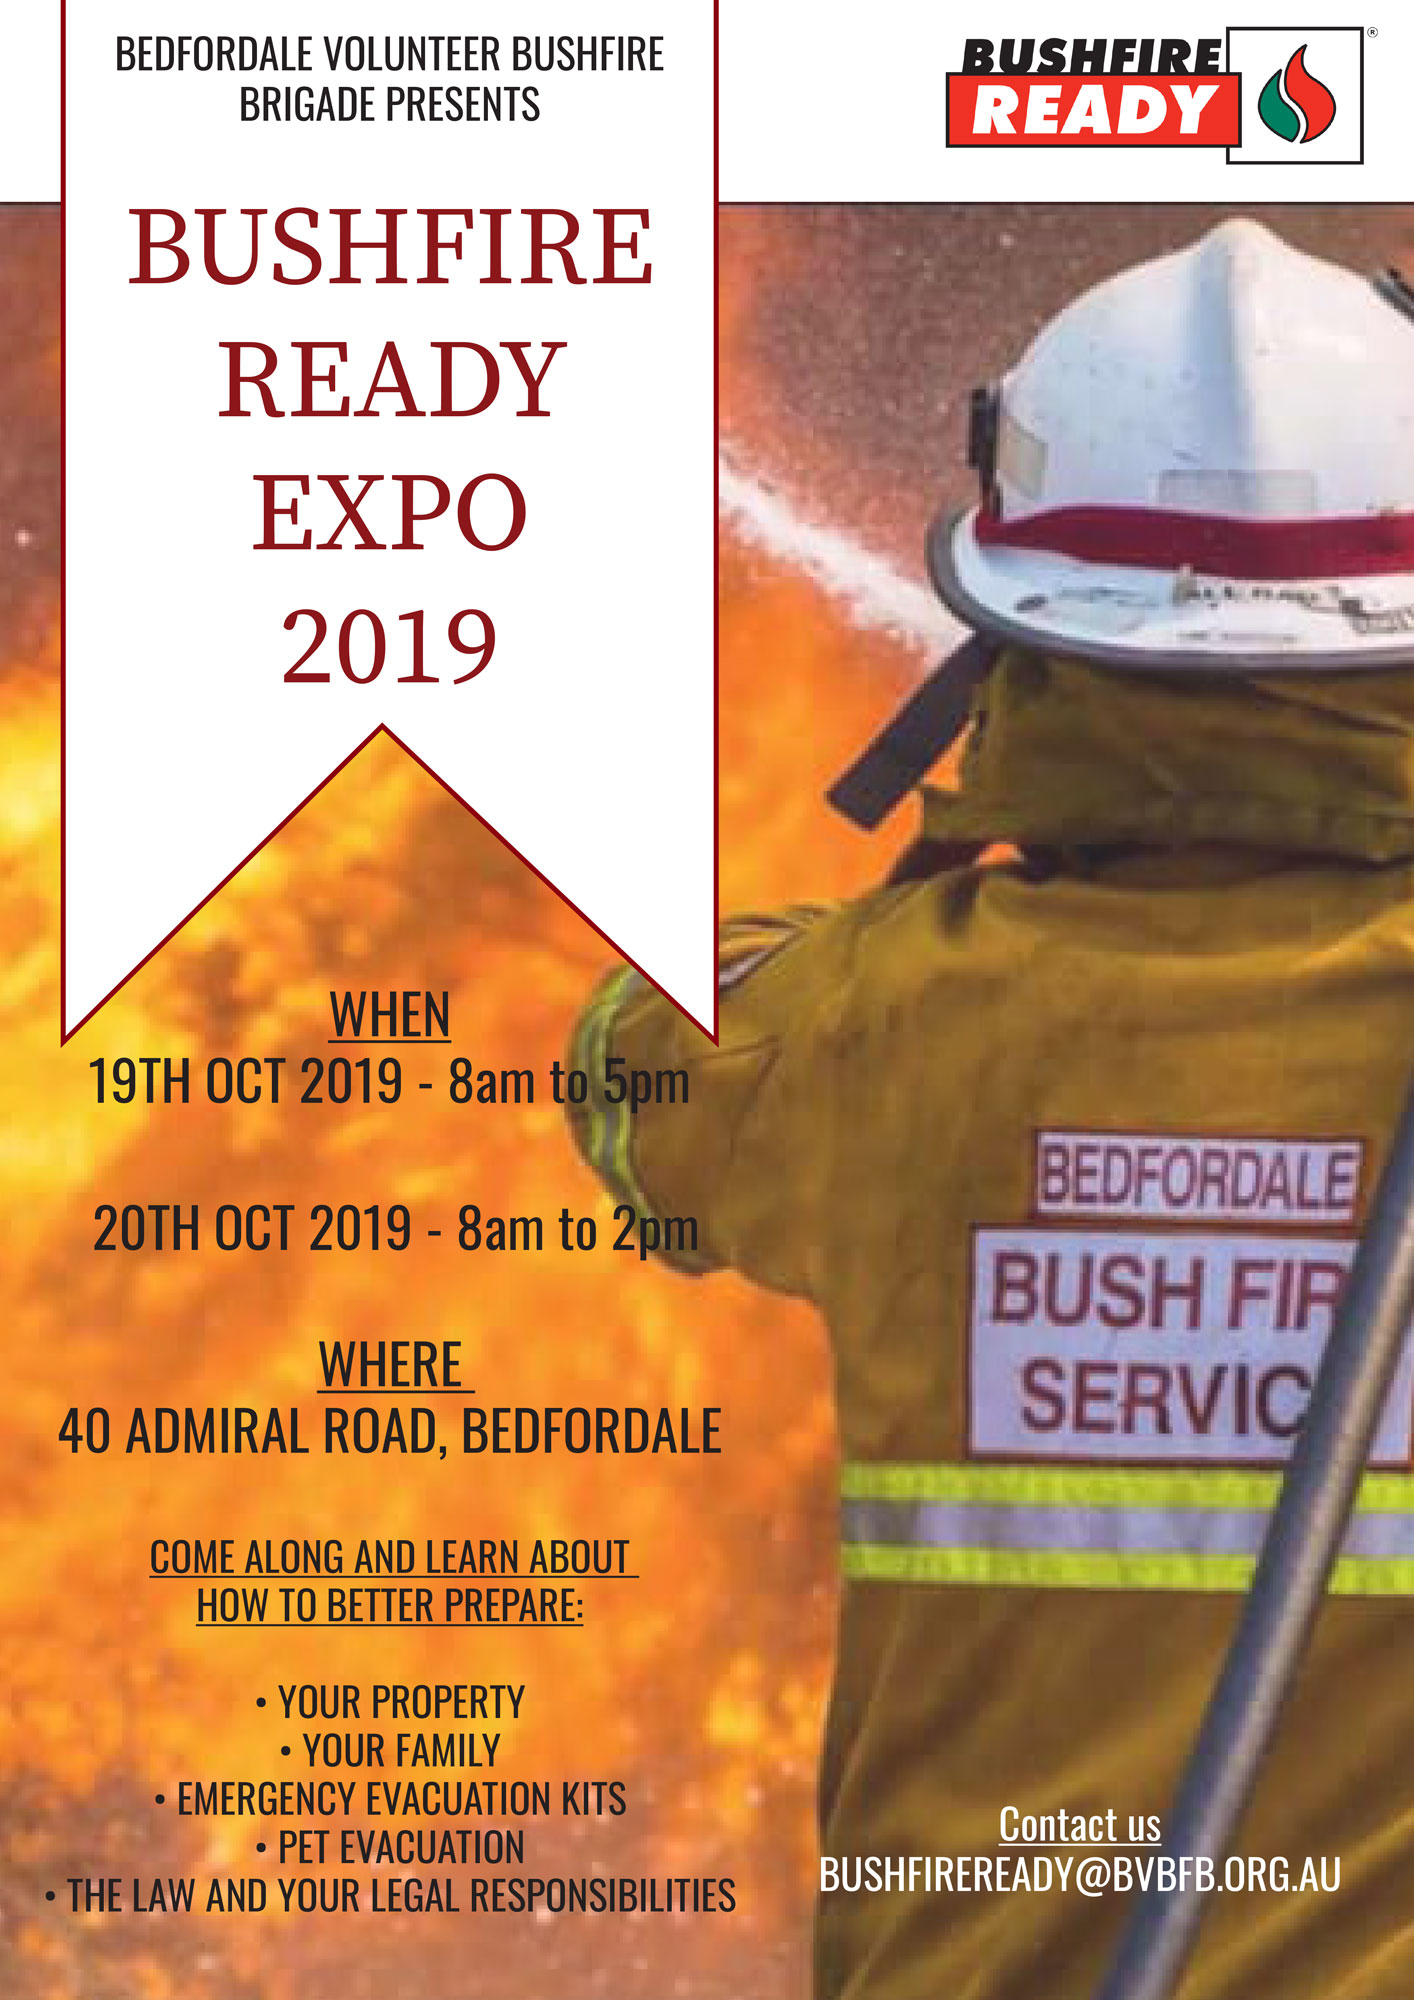 Get Bushfire Ready with Bedfordale BFB this weekend